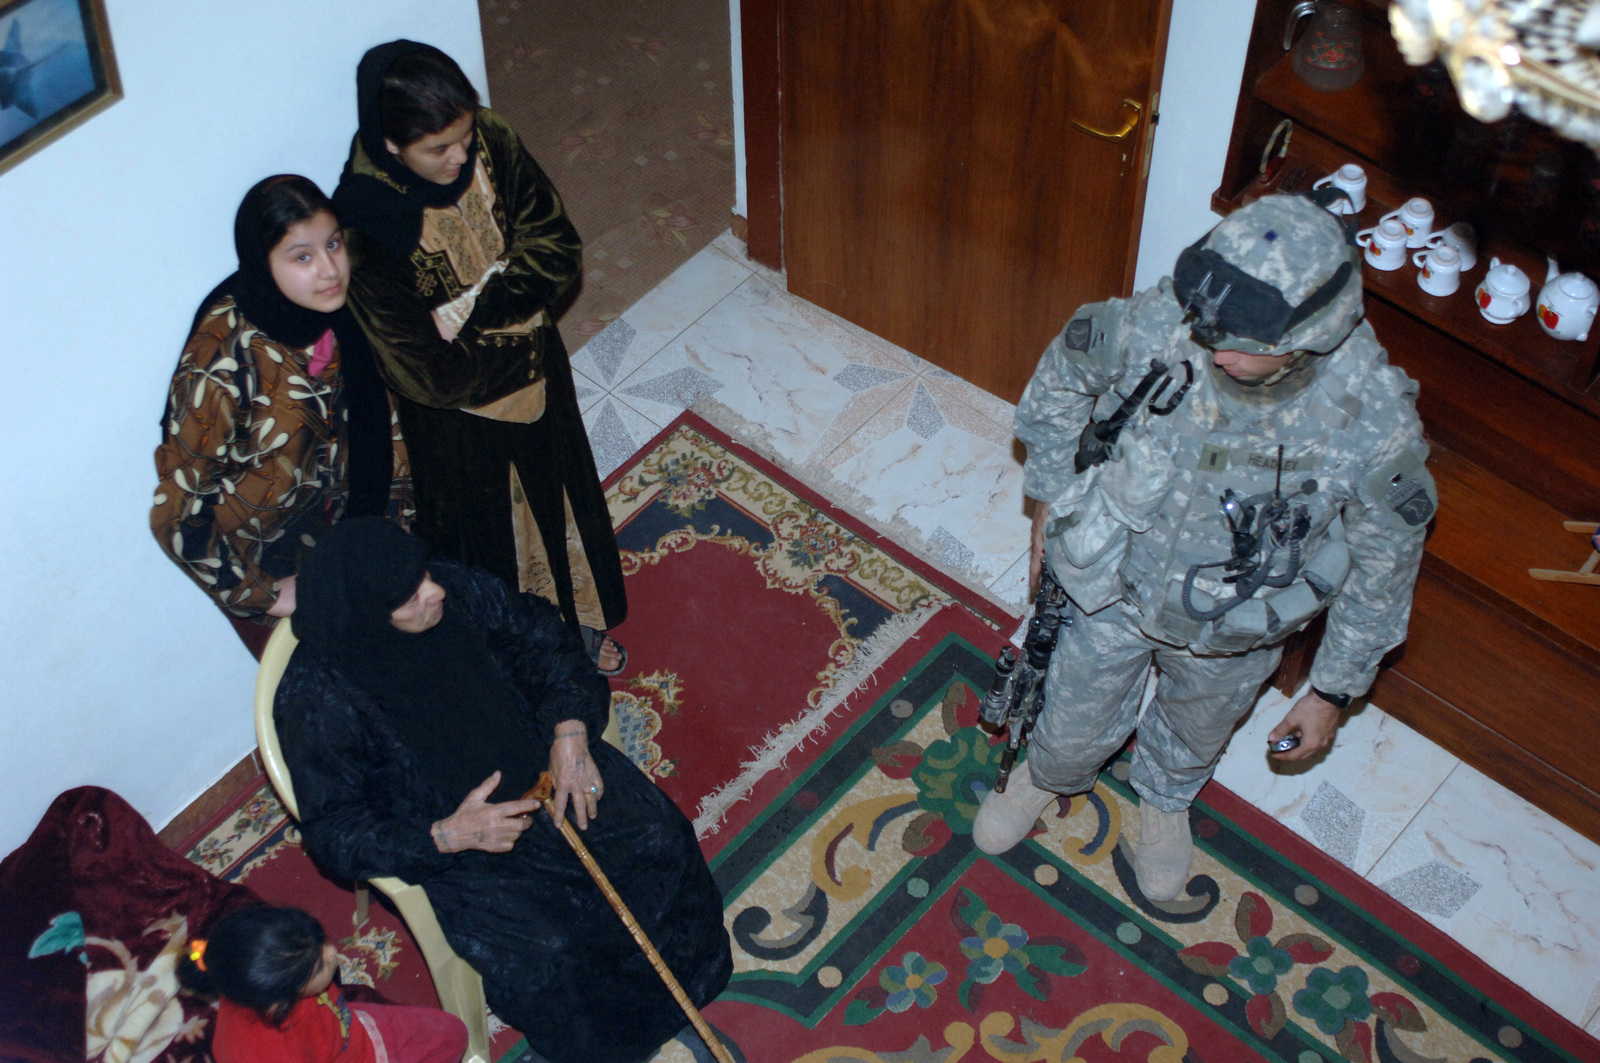 On February 15, 2006 soldiers from B Company, 2-506 INF (Band of Brothers) conducted a search operation of a local meat packing slaughter house near Observation Post Red in Southern Baghdad. The area was known for having ties to Anti Iraqi Forces. 1LT Joshua Headley from B Co 2nd Platoon questioned a family that lived near the meat packing house.(Released)US Army photo by SSG Kevin L. Moses Sr